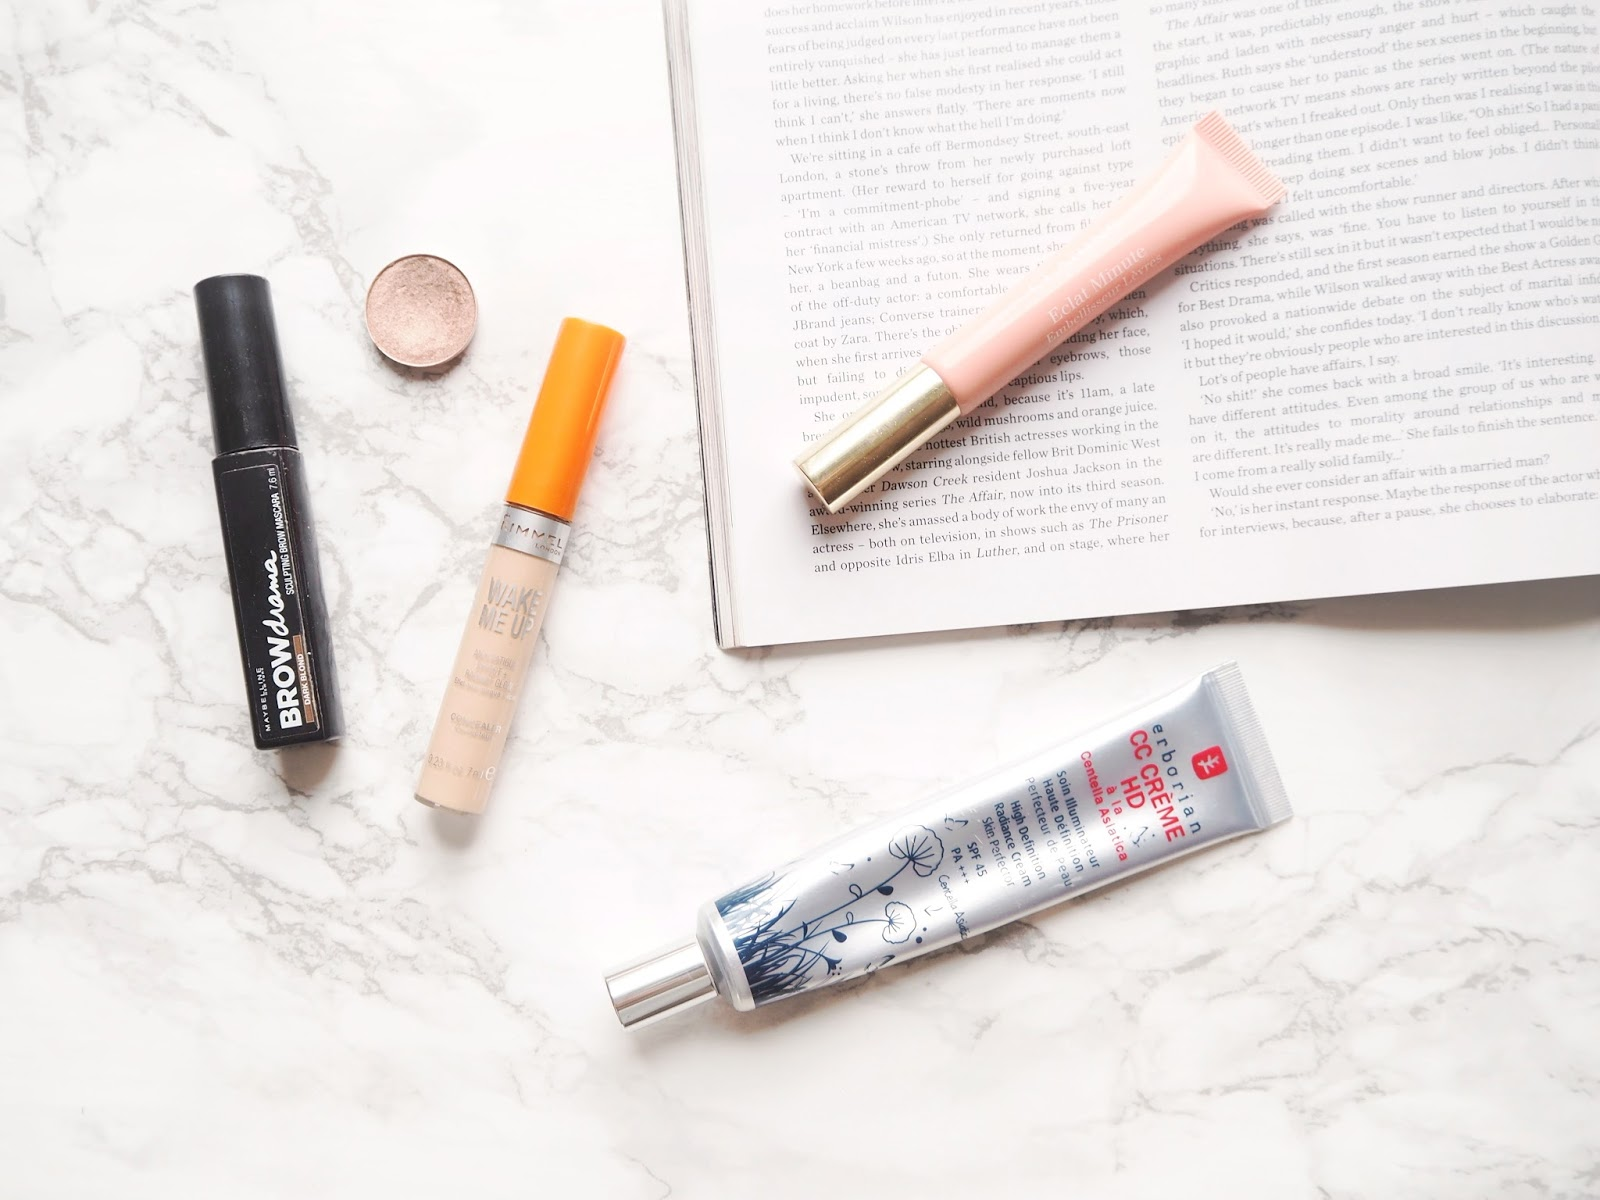 Minimal Makeup Essentials, no makeup makeup, erborian cc crème HD, rimmel wake me up concealer, maybelline brow drama sculpting brow mascara, mac all that glitters eyeshadow, clarins instant light natural lip perfector 02, review